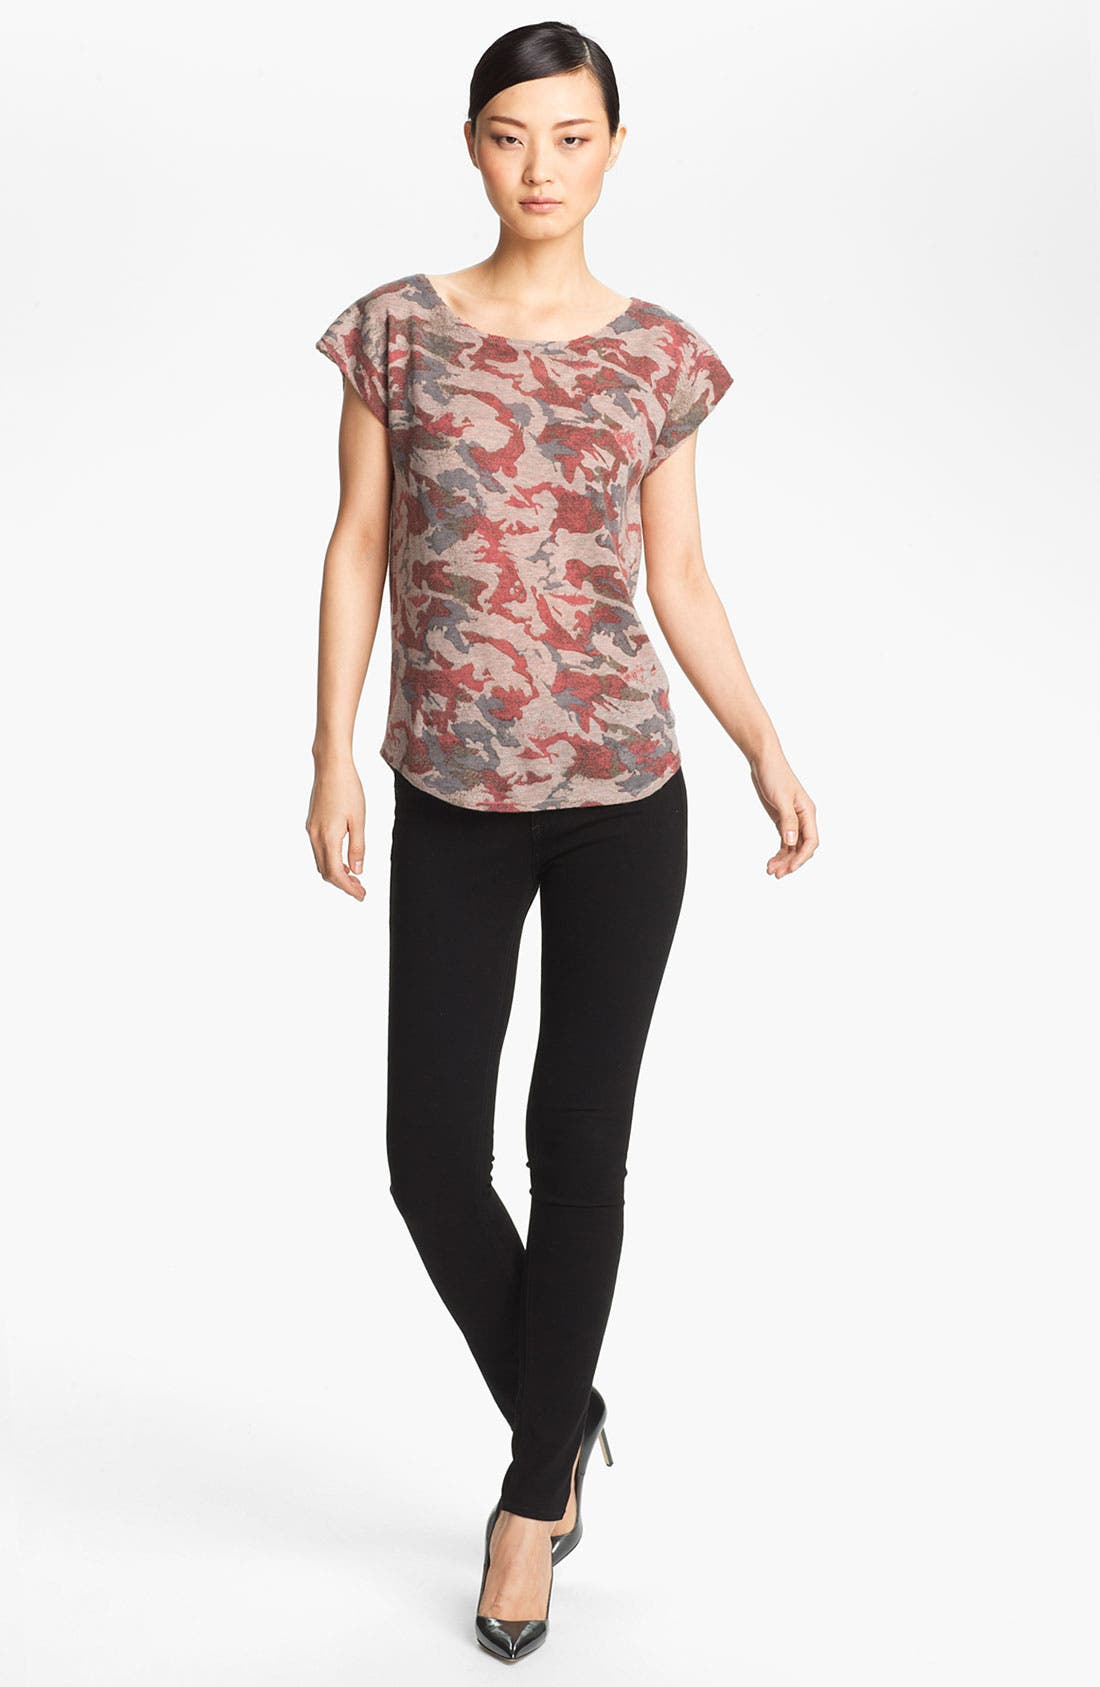 Alternate Image 1 Selected - Zadig & Voltaire 'Data' Camo Print Cashmere Tee